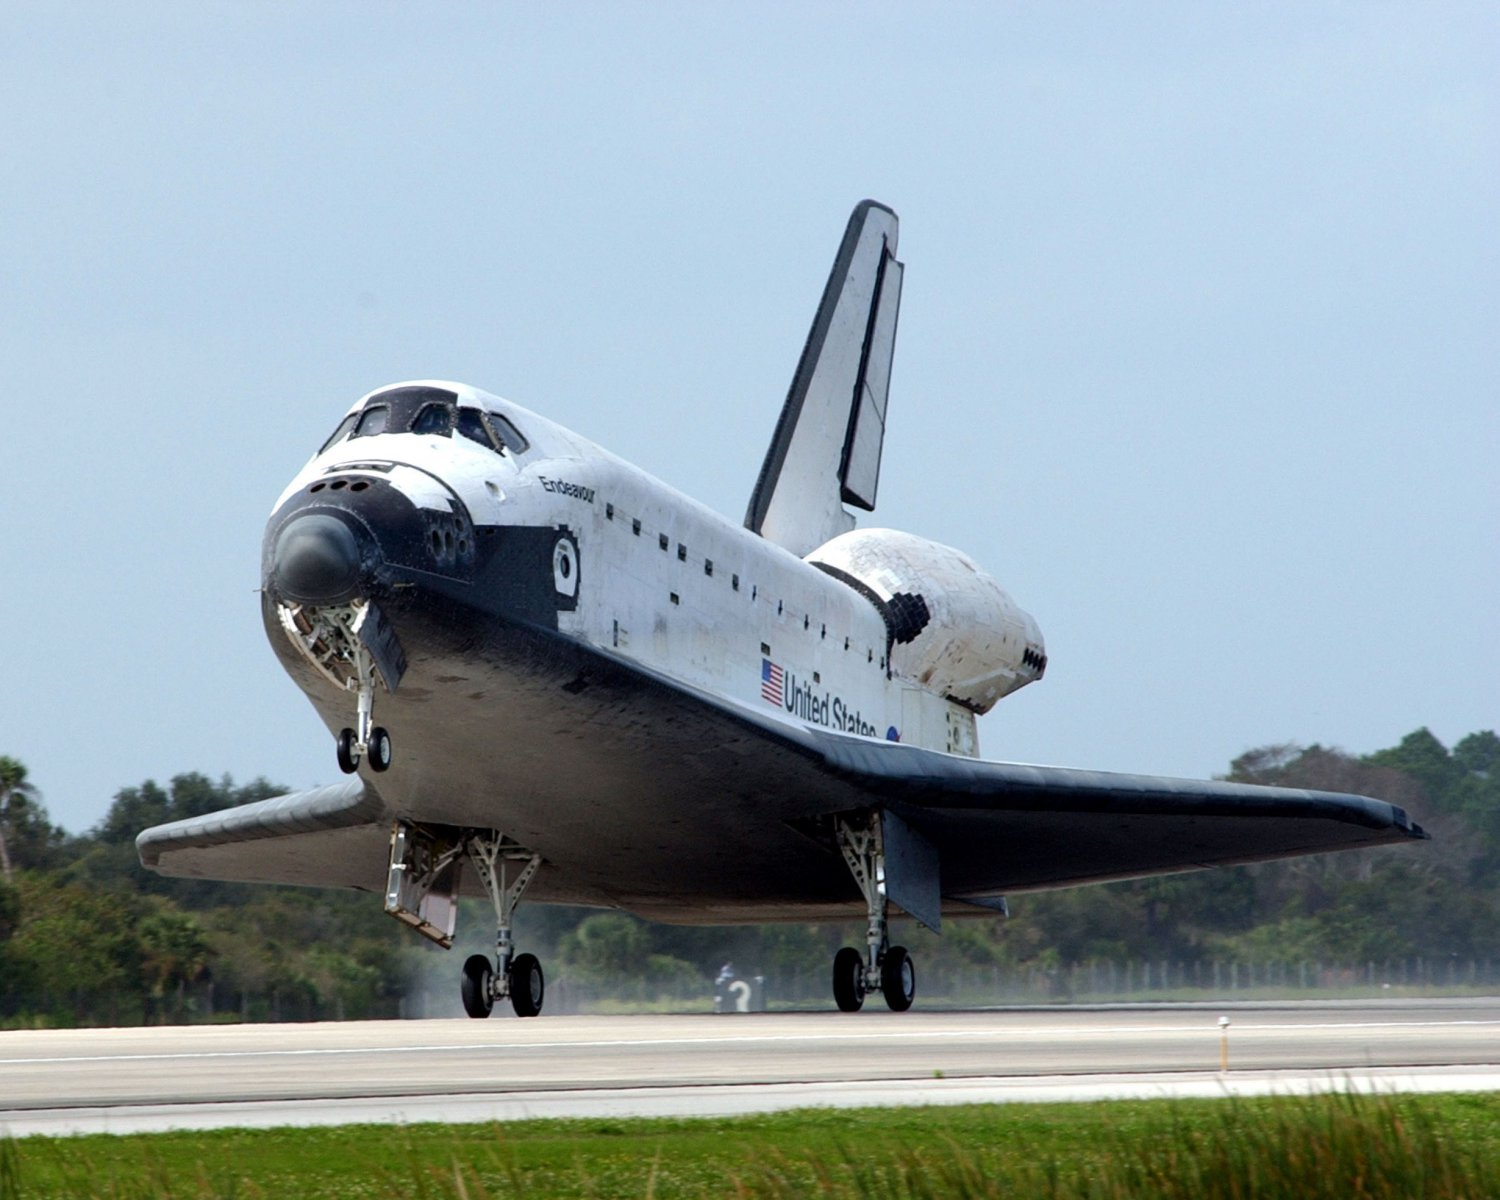 SPACE SHUTTLE ENDEAVOR LANDS ON THE RUNWAY AT KENNEDY - 8X10 NASA PHOTO (ZZ-094)